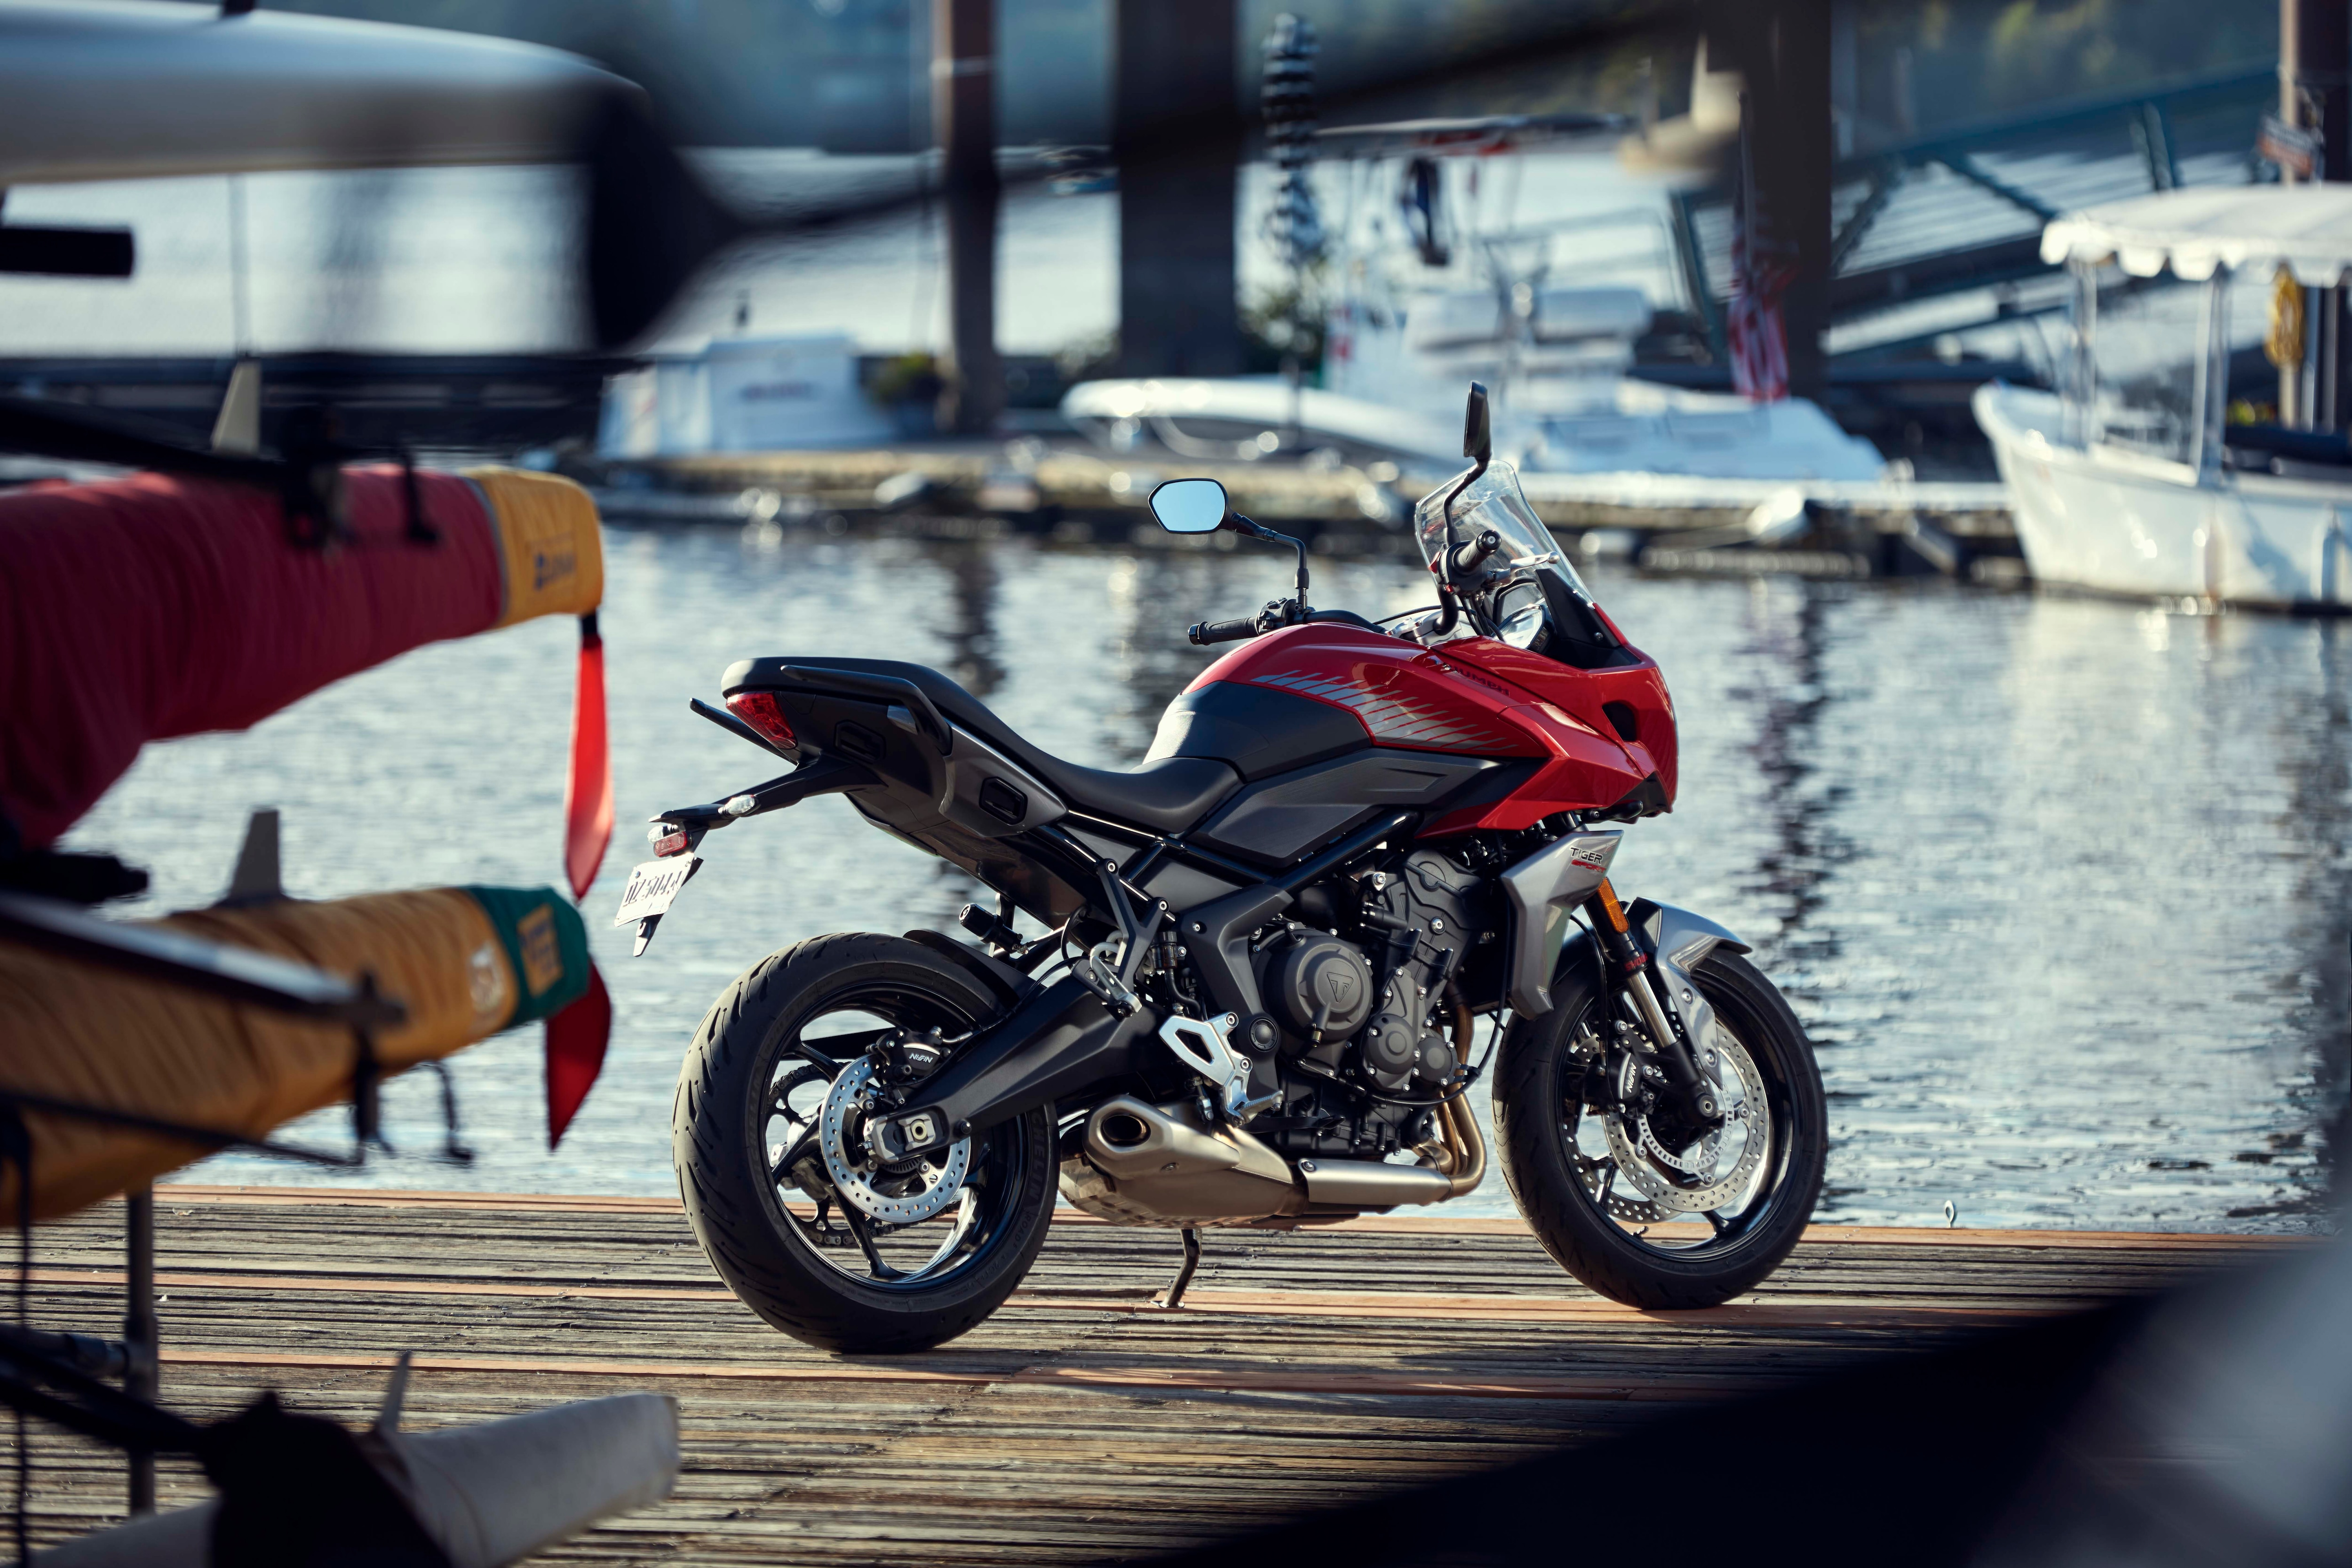 Triumph Tiger Sport 660 is also slated to arrive in the Indian market but an official launch timeline is yet to be revealed.